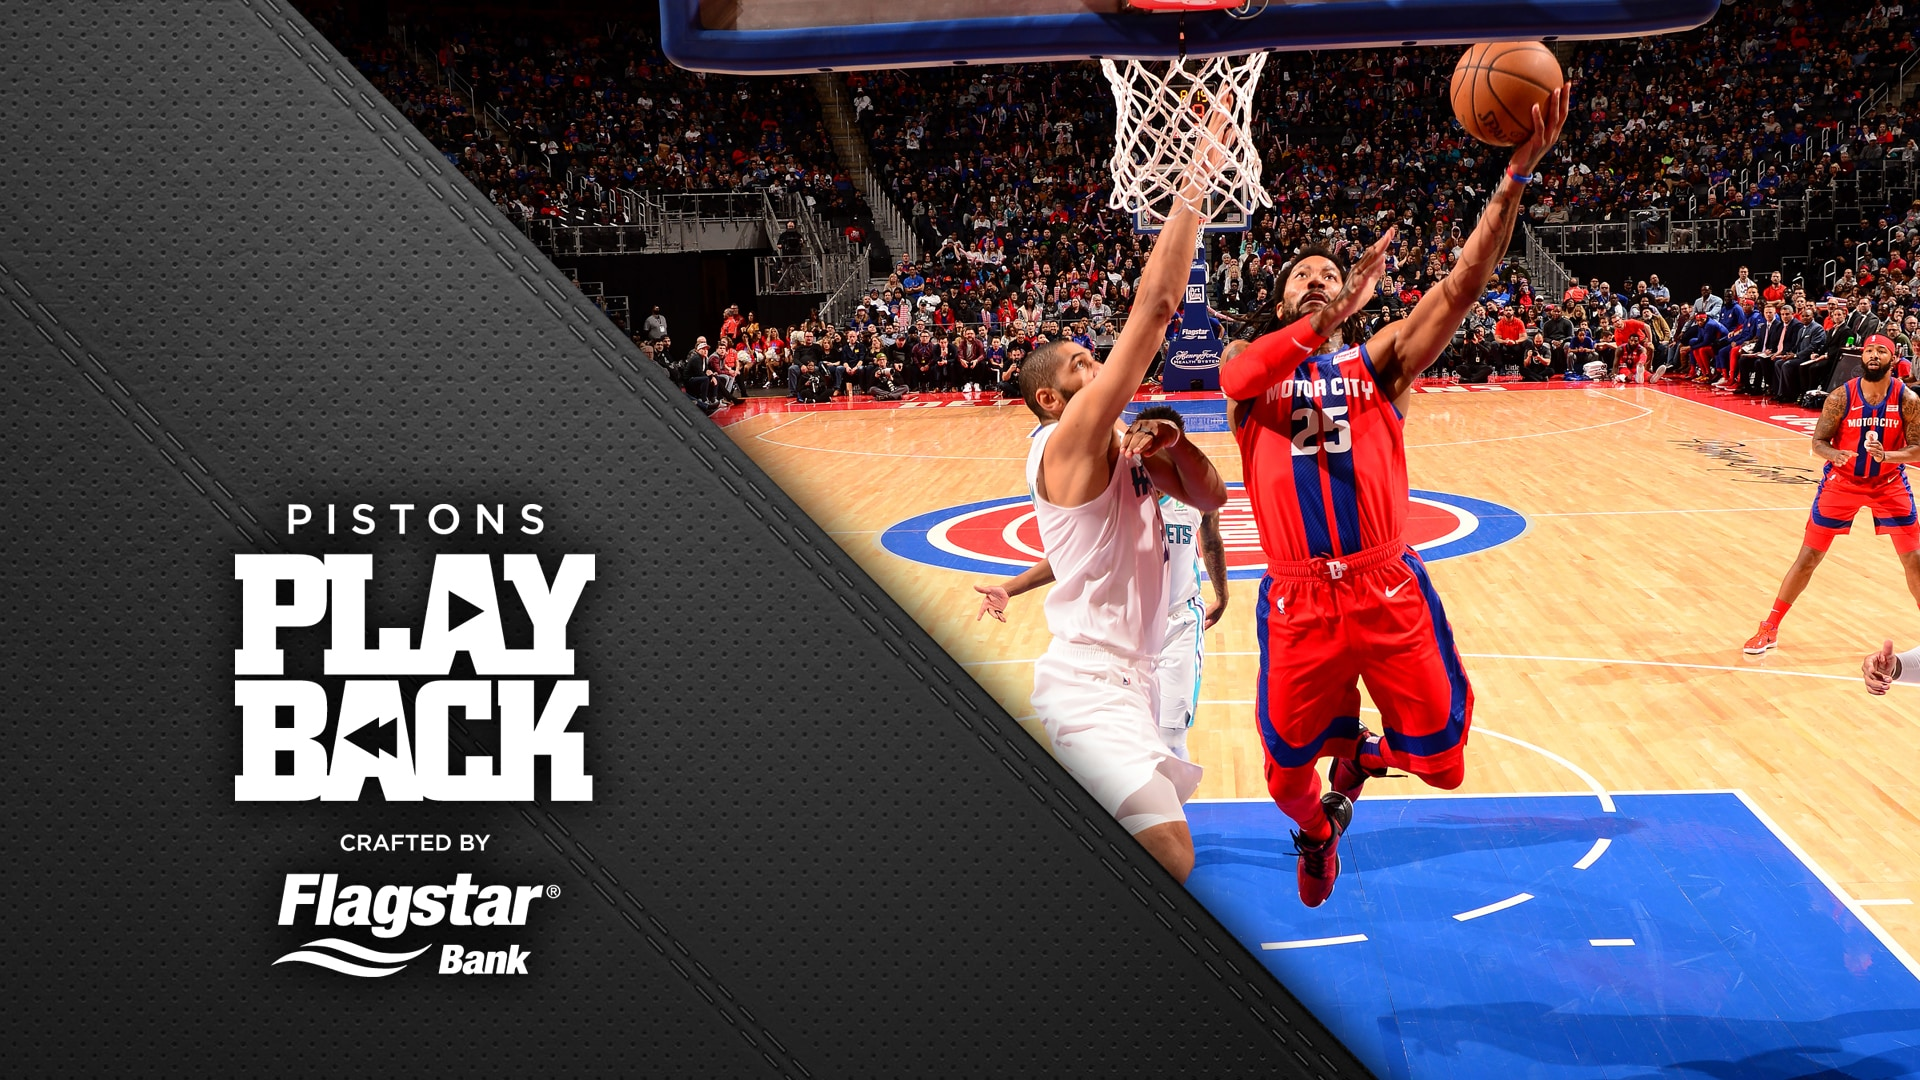 Pistons Playback, crafted by Flagstar: Pistons vs Hornets